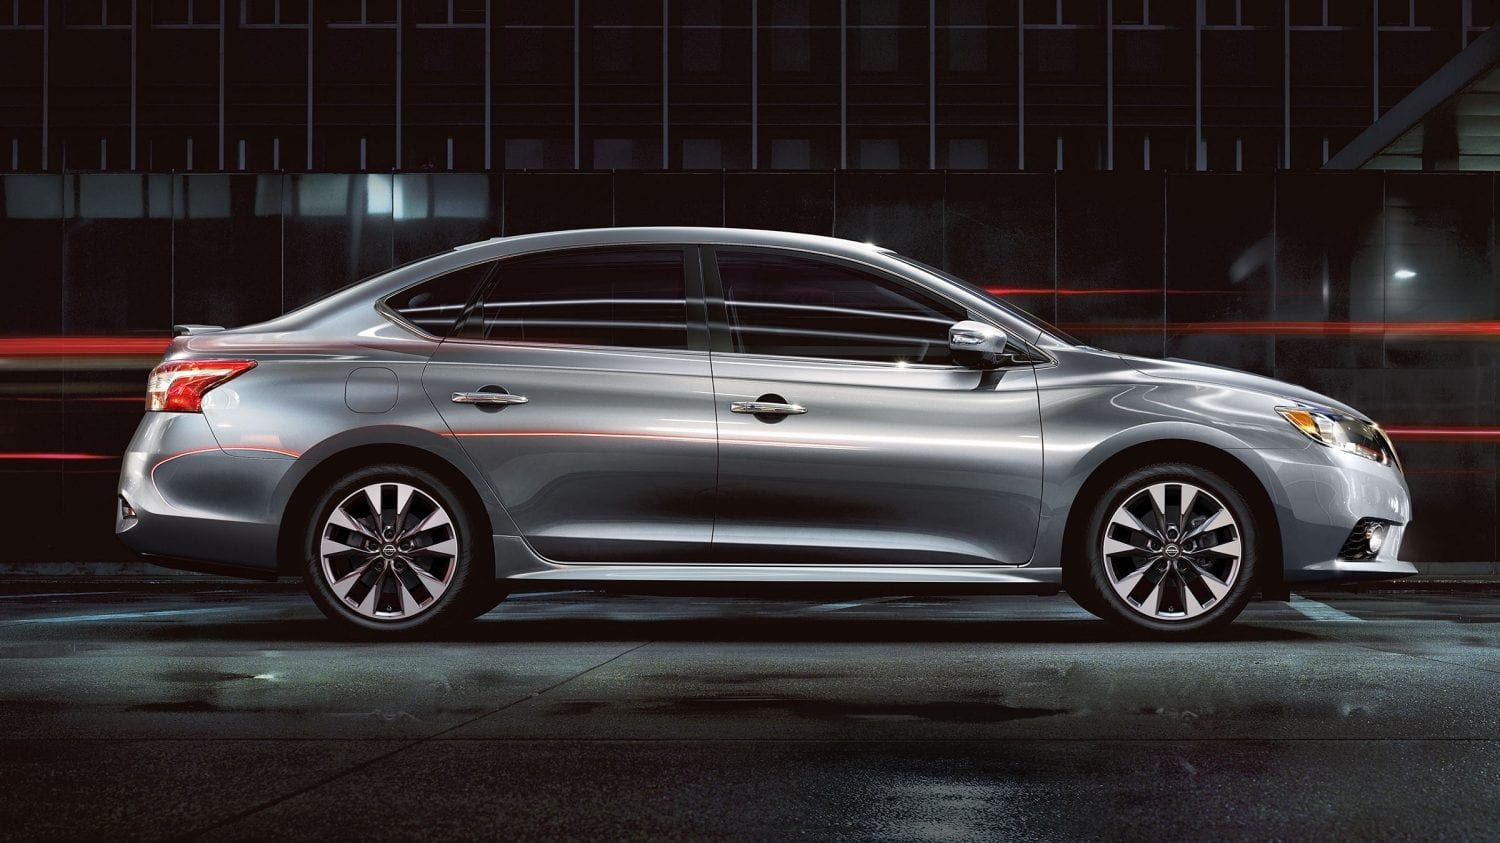 New 2019 Nissan Sentra Confident Handling Keeps It On The Level